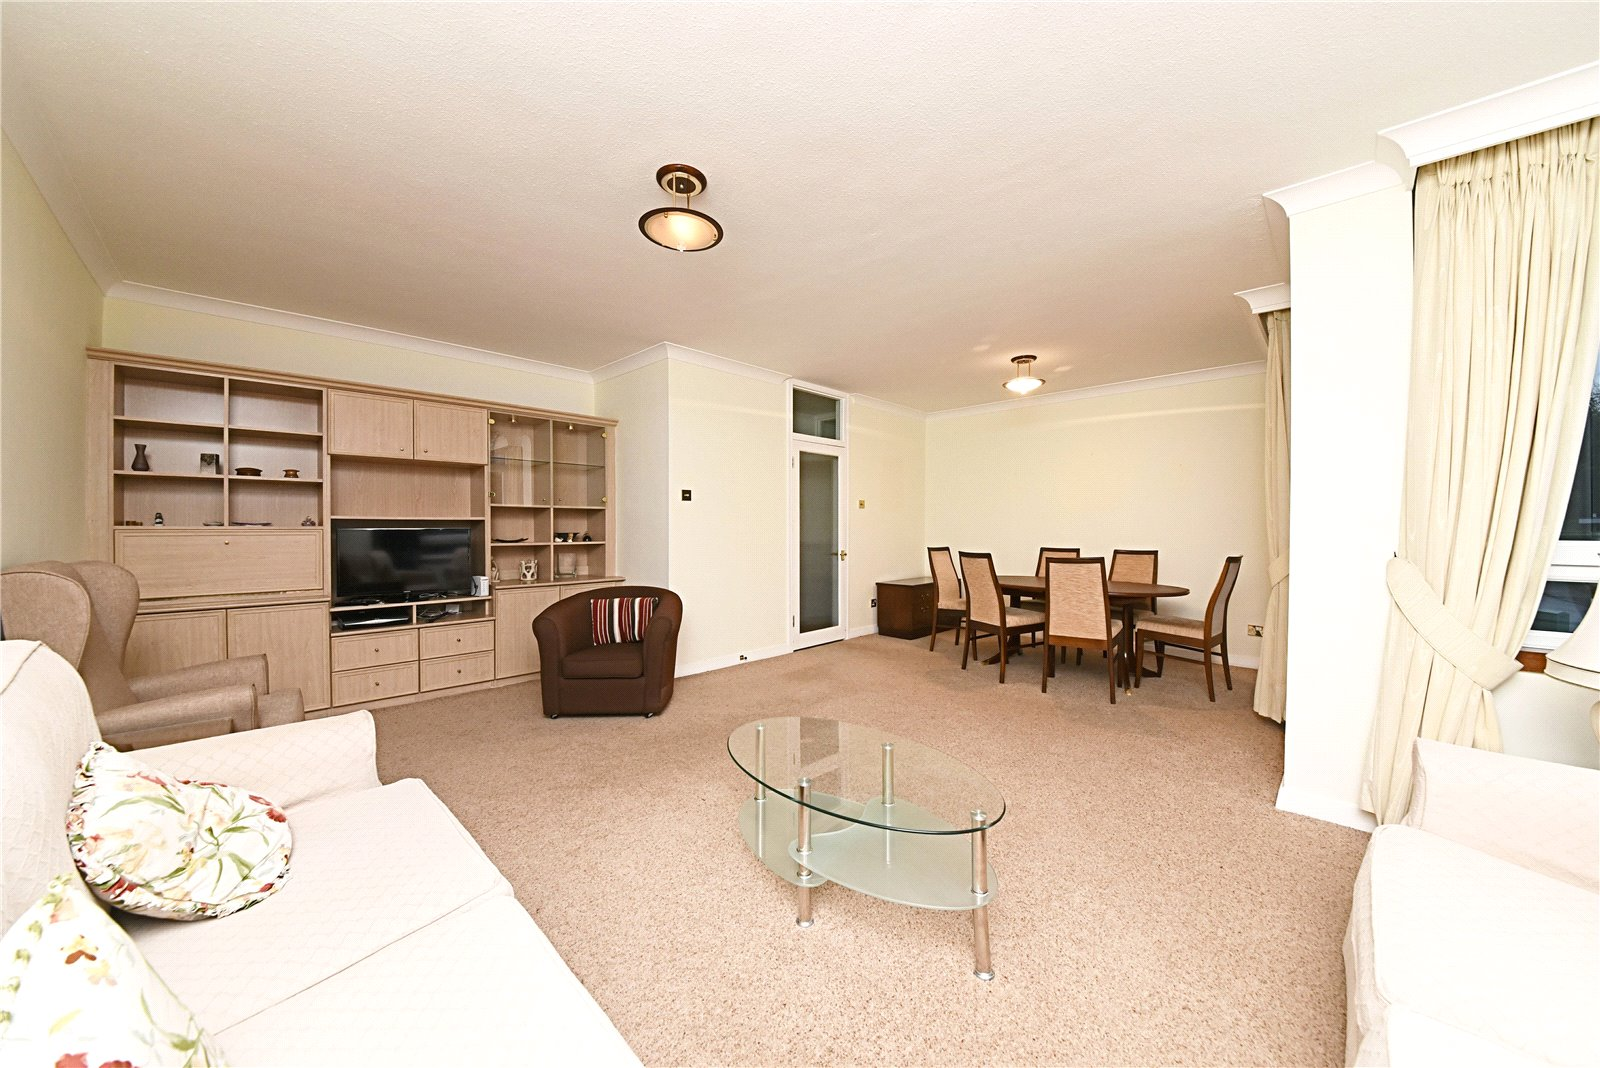 2 bed apartment for sale in Hendon, NW4 1RB 1